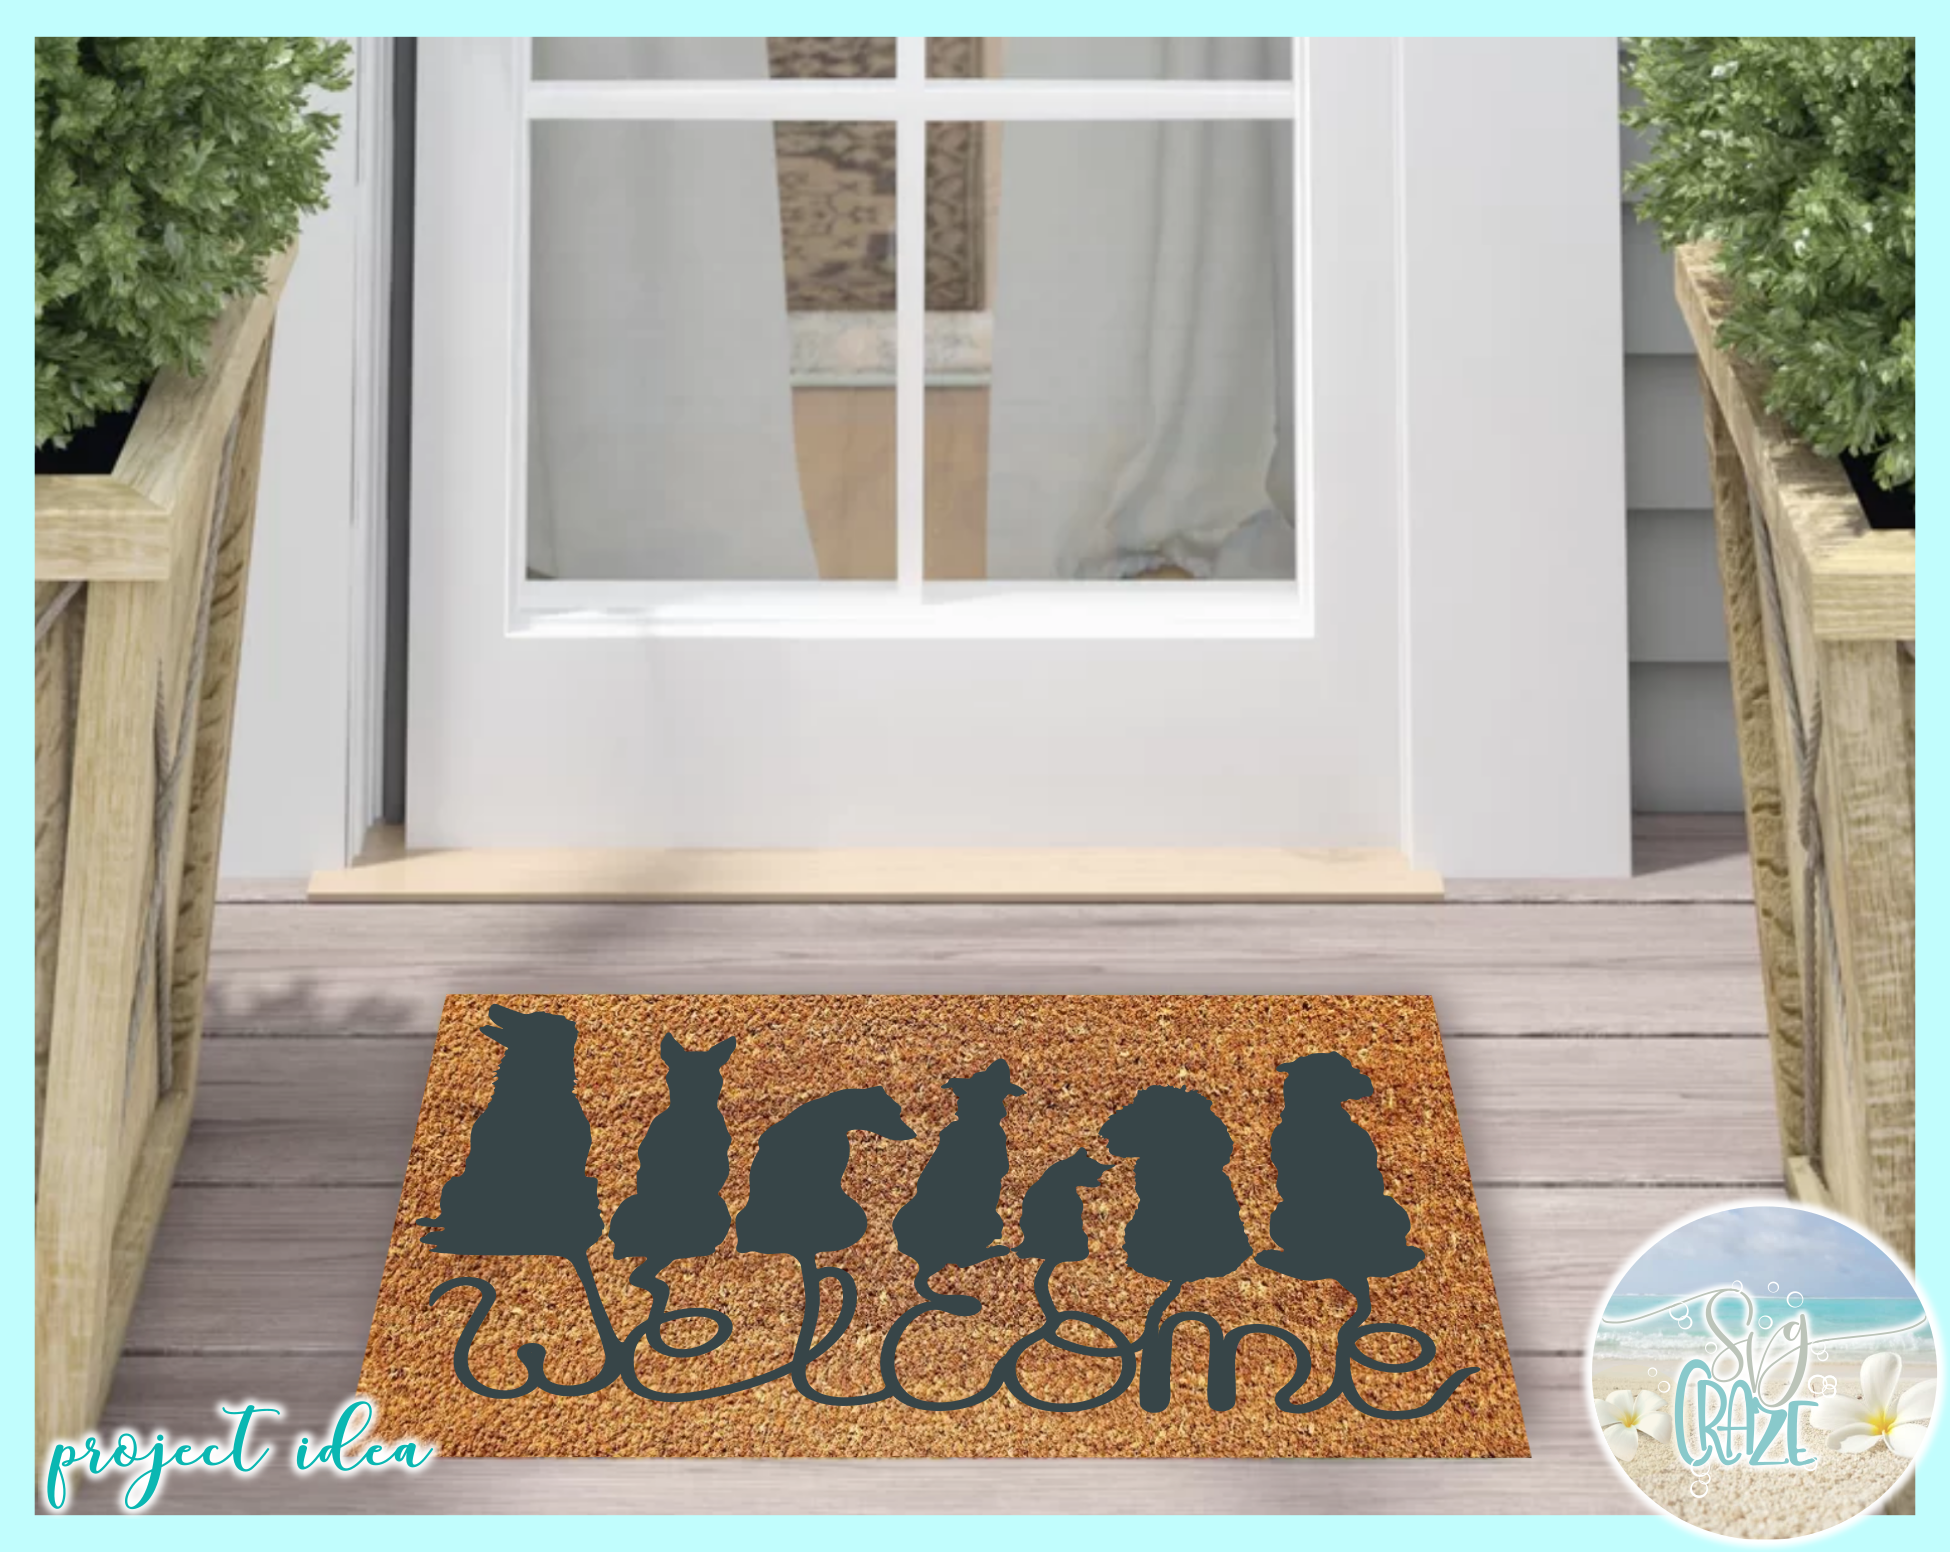 Dogs Welcome Coir Door Mat Design Svg Dxf Eps Png Pdf Files example image 2